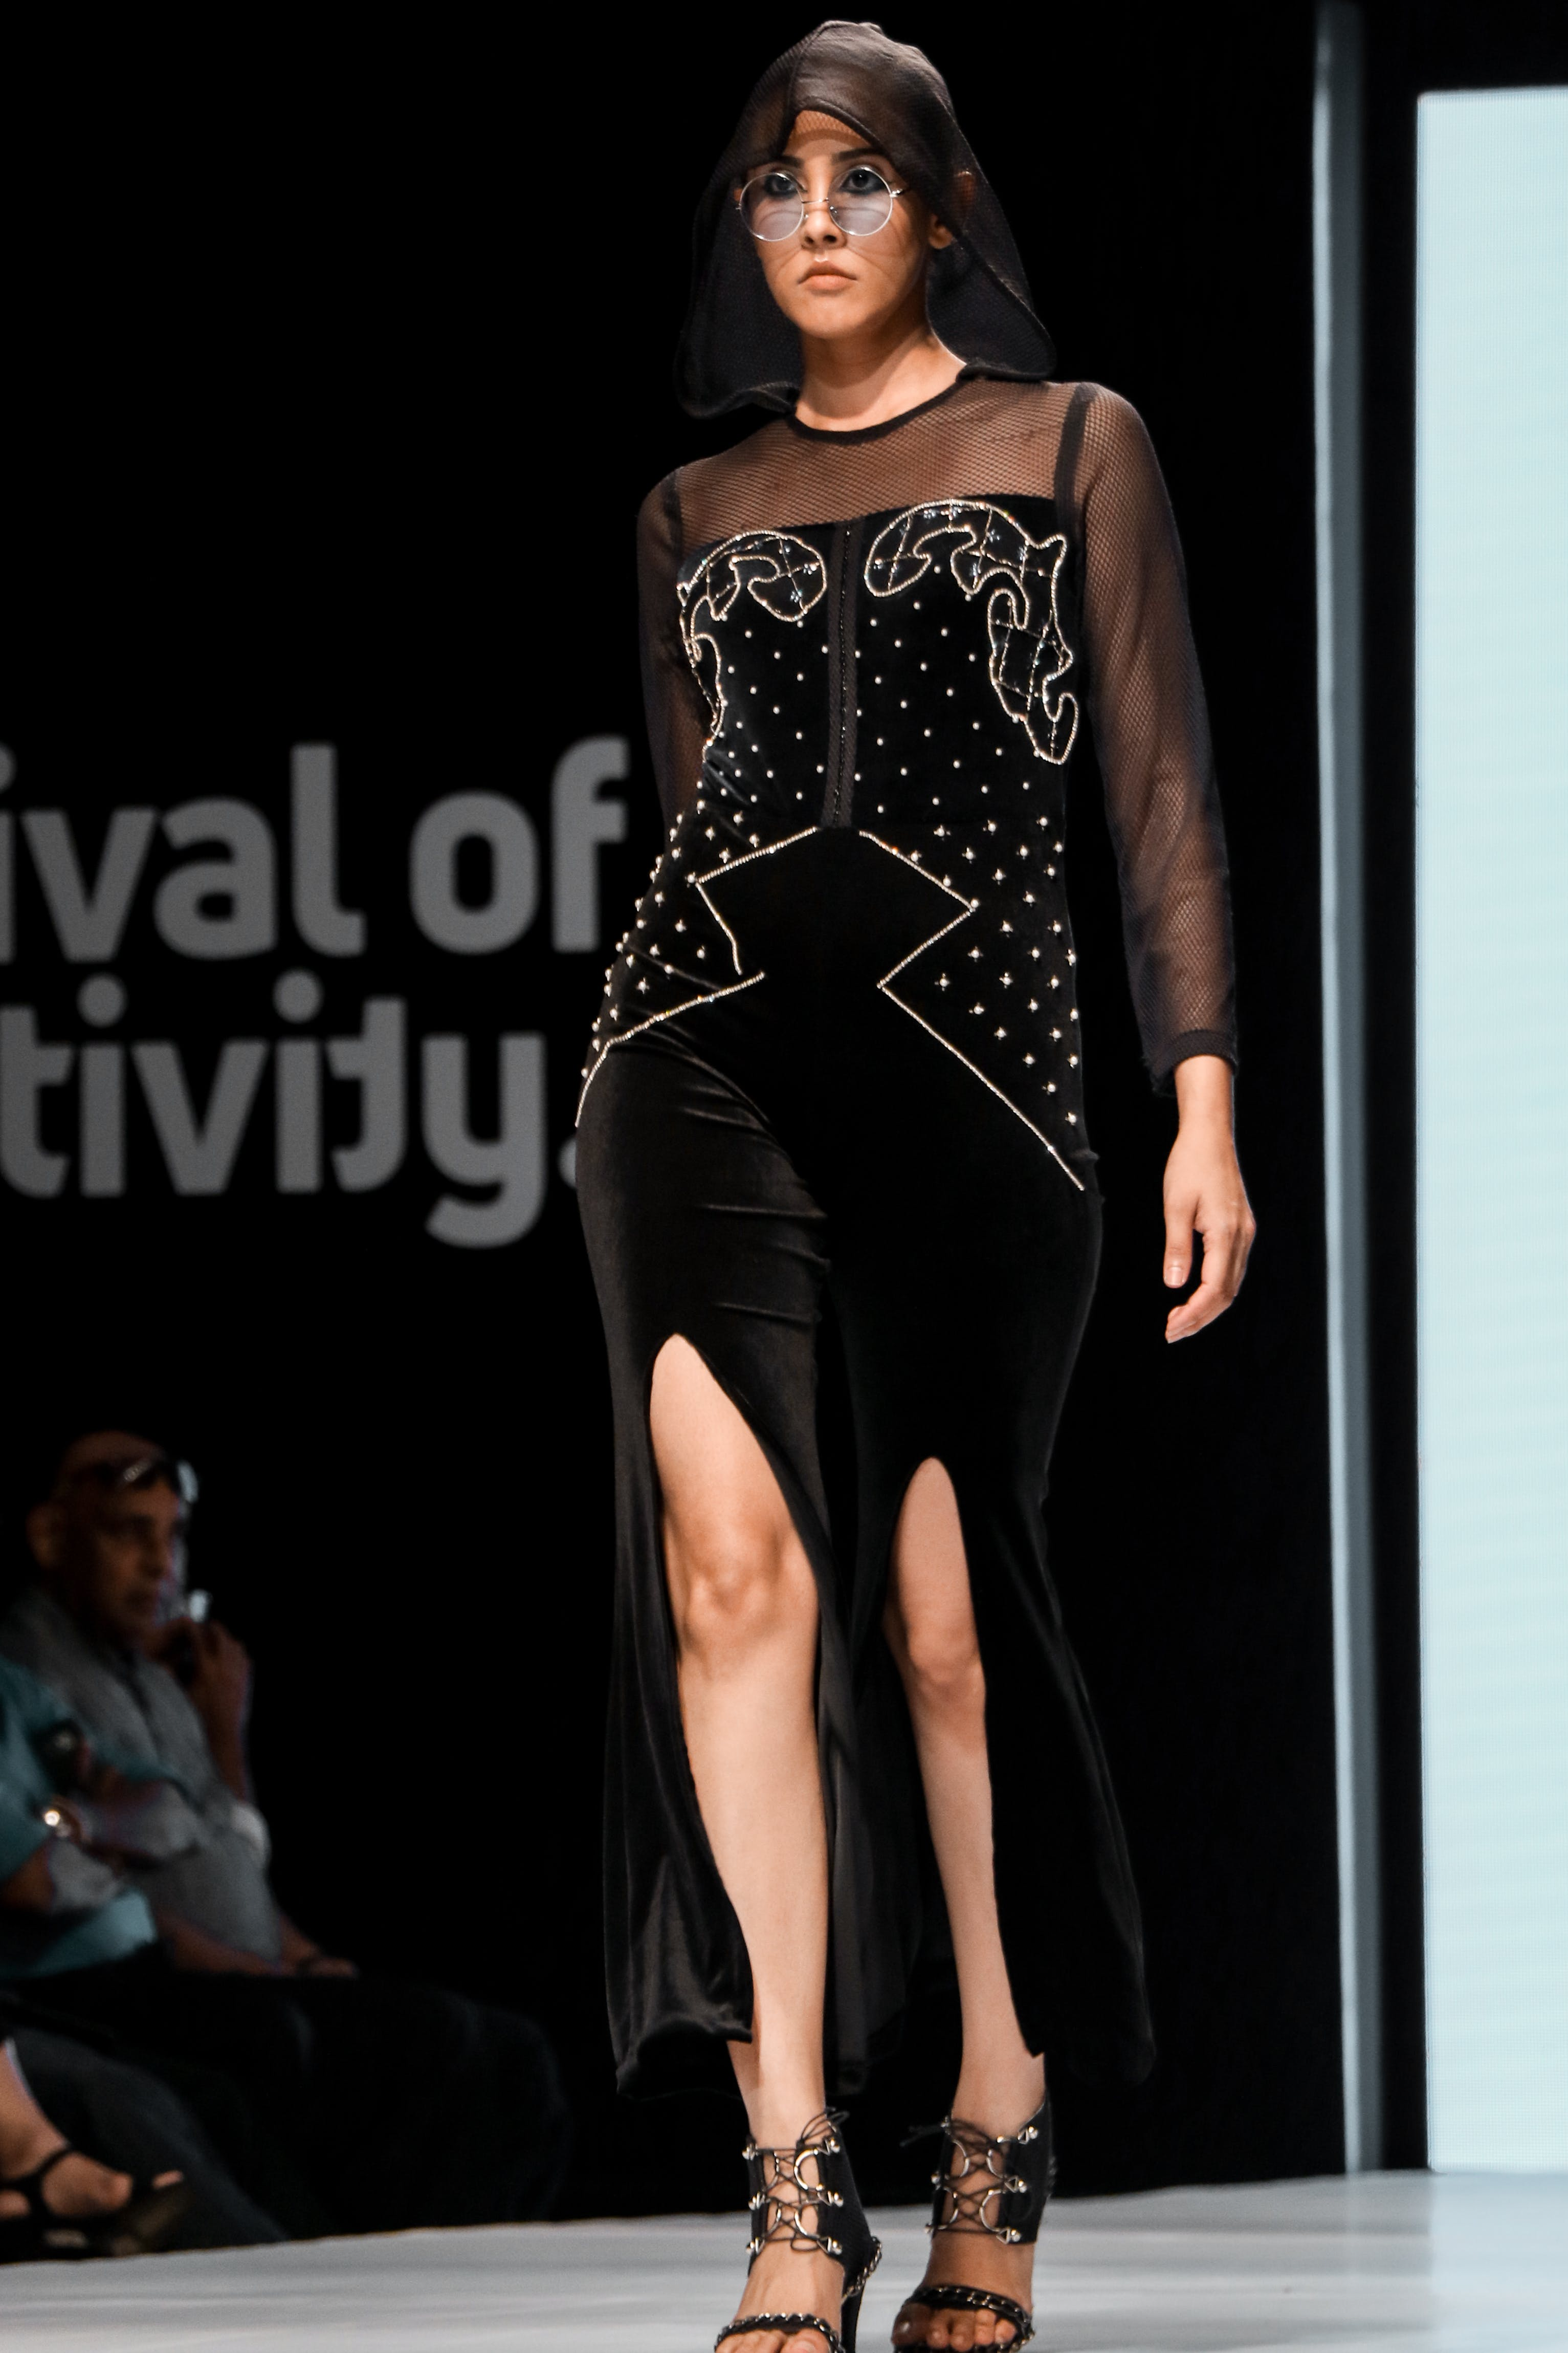 Photo of Runway Model Modelling a Black Outfit